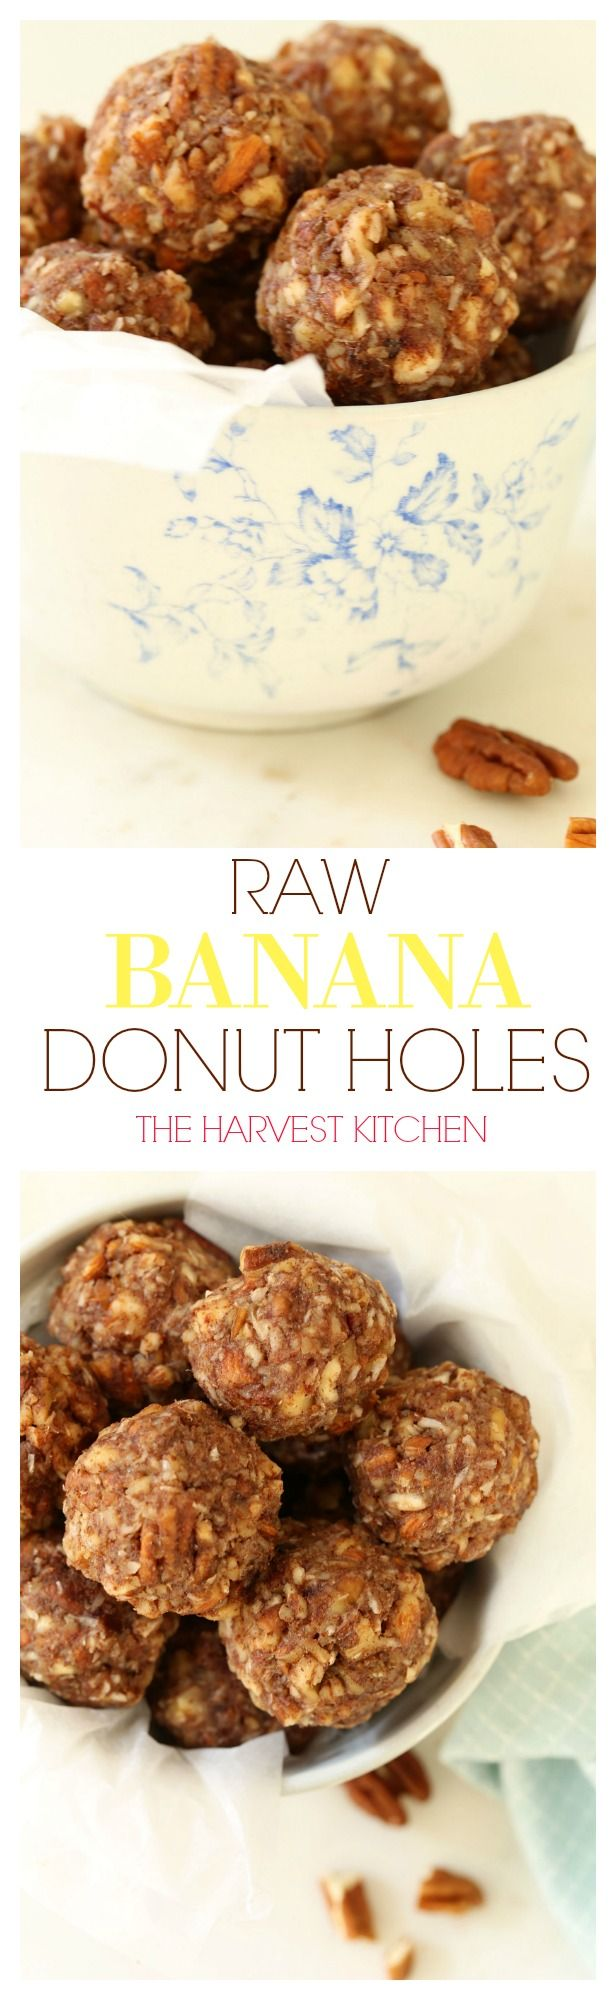 Made with just 8 ingredients, these Raw Banana Donut Holes are rich, nutty and sweetened with dates and banana. They're completely addicting and will satisfy any sweet-tooth. This is an easy Vegan and Gluten Free recipe made with whole ingredients. @theharvestkitchen.com